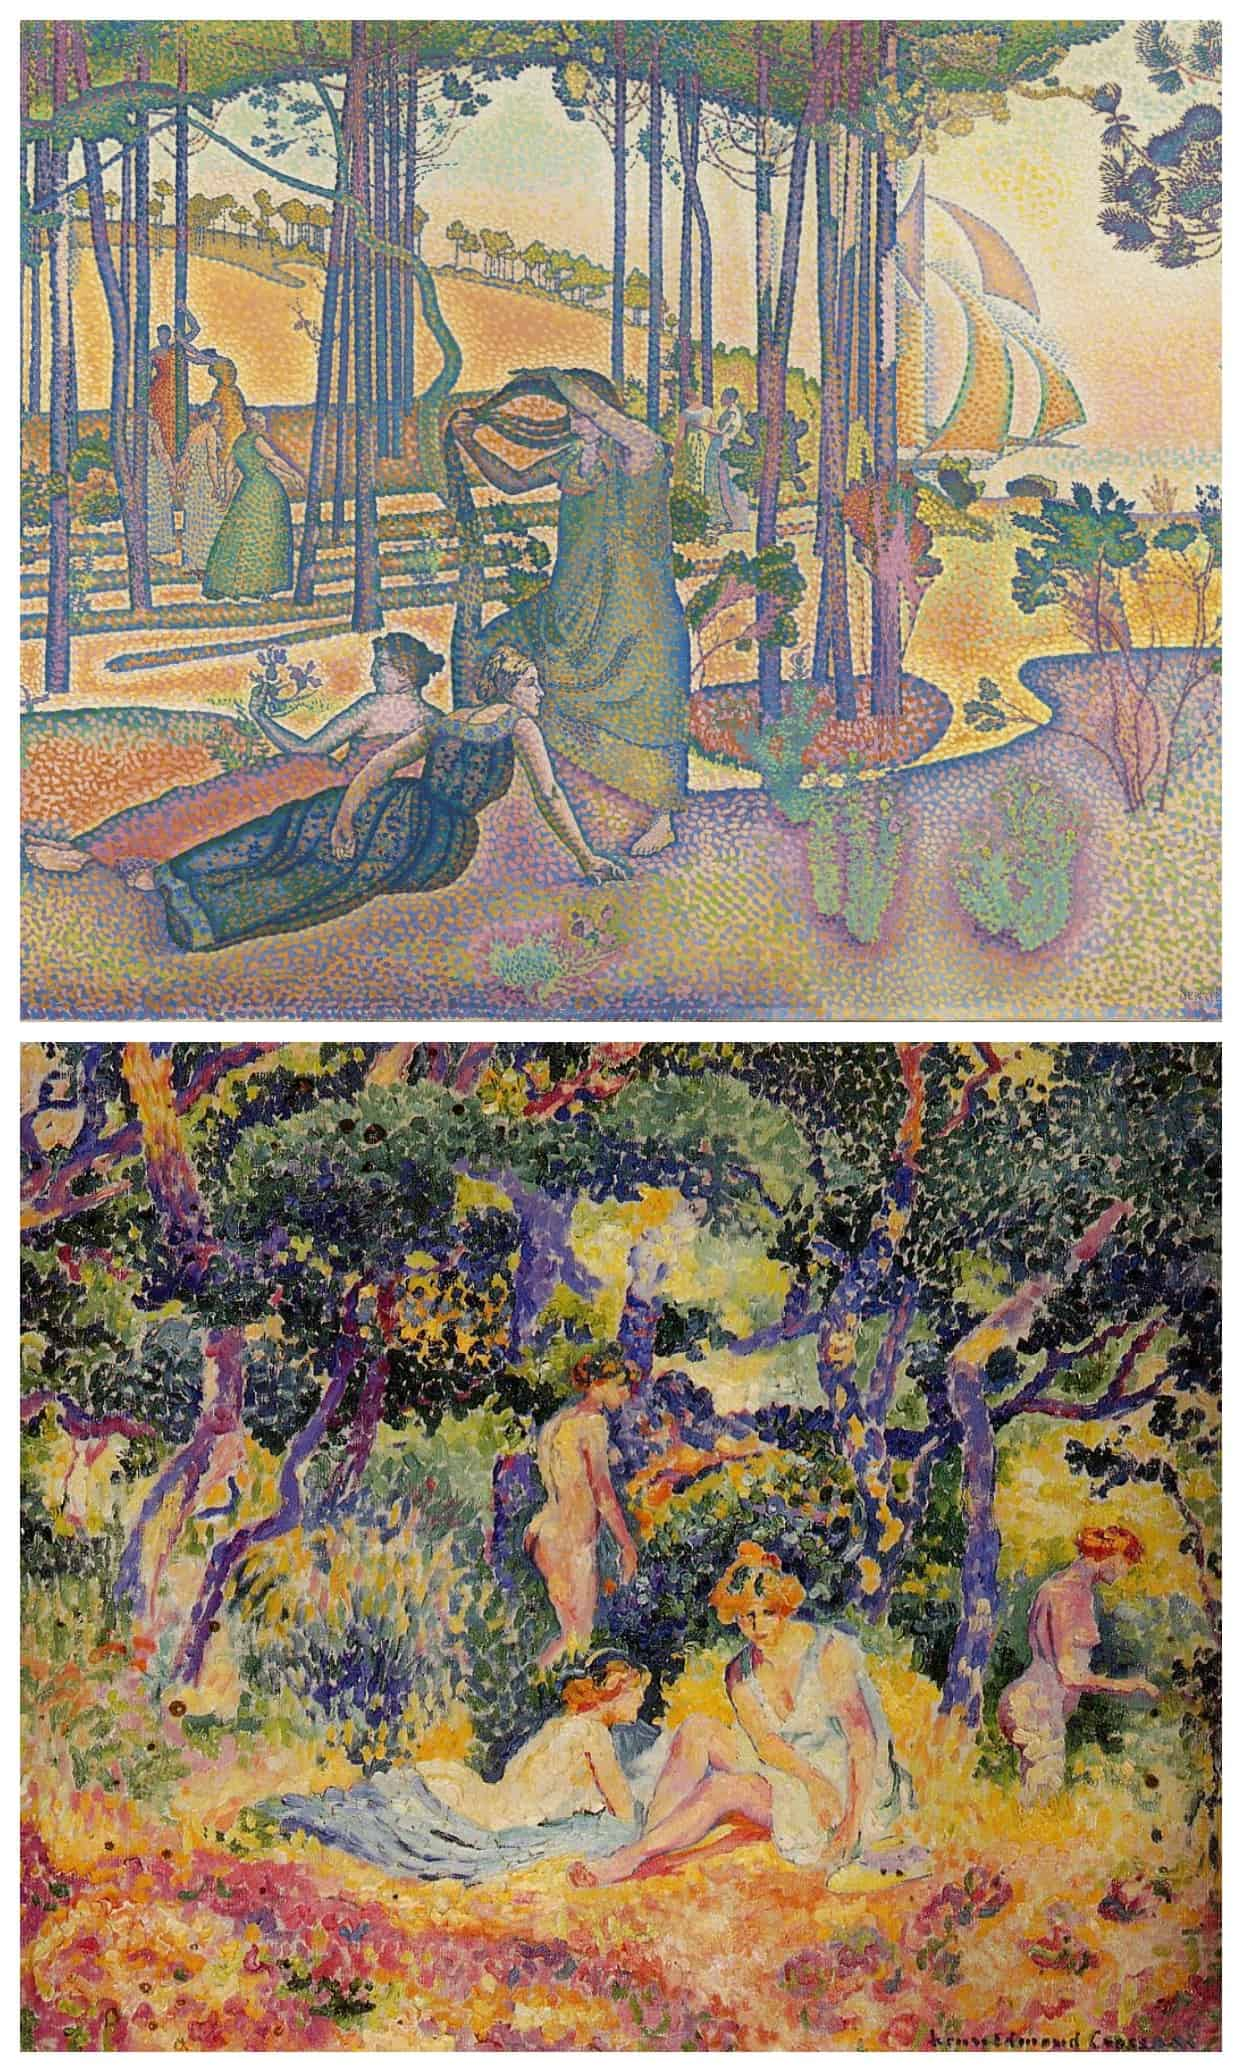 2 paintings by Henri Edmond Cross